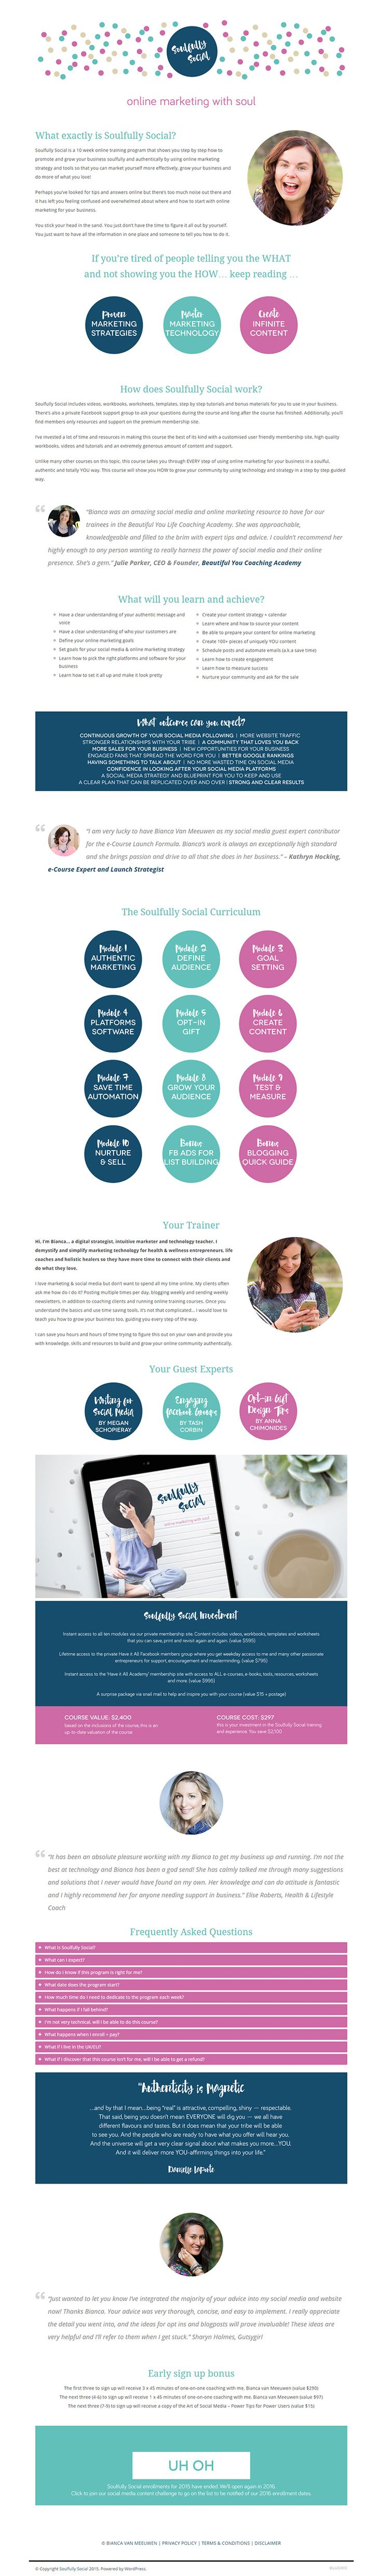 Sales page design for online marketing training program. Using Jacqueline Theme from Bluchic. Visit soulfullysocial.com